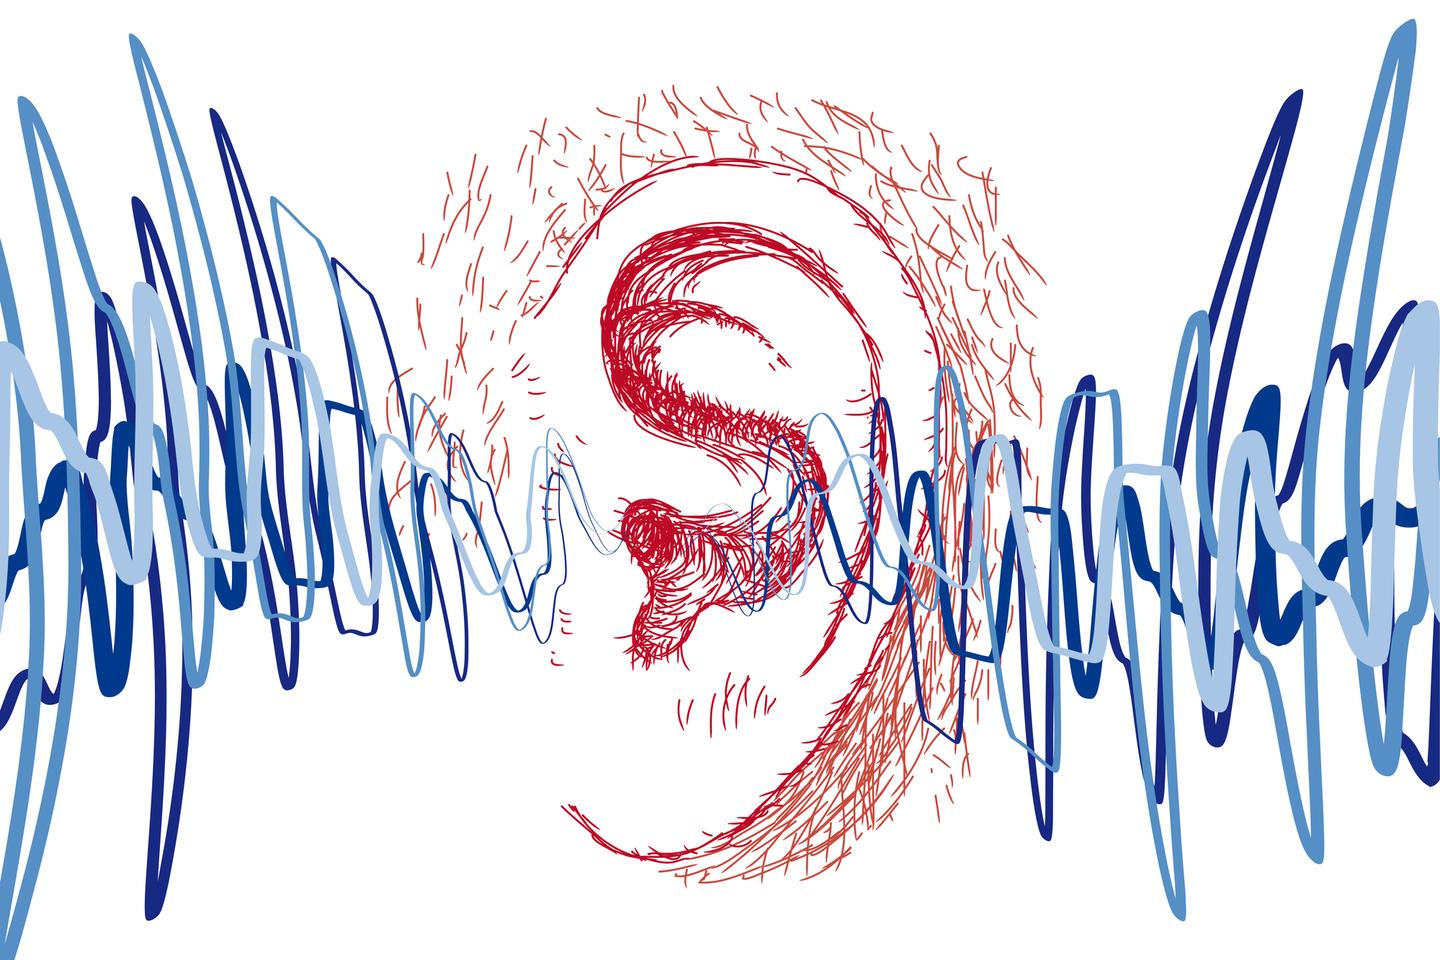 Although an association is becoming clear, there is no good evidence so far suggesting COVID-19 directly causes hearing problems